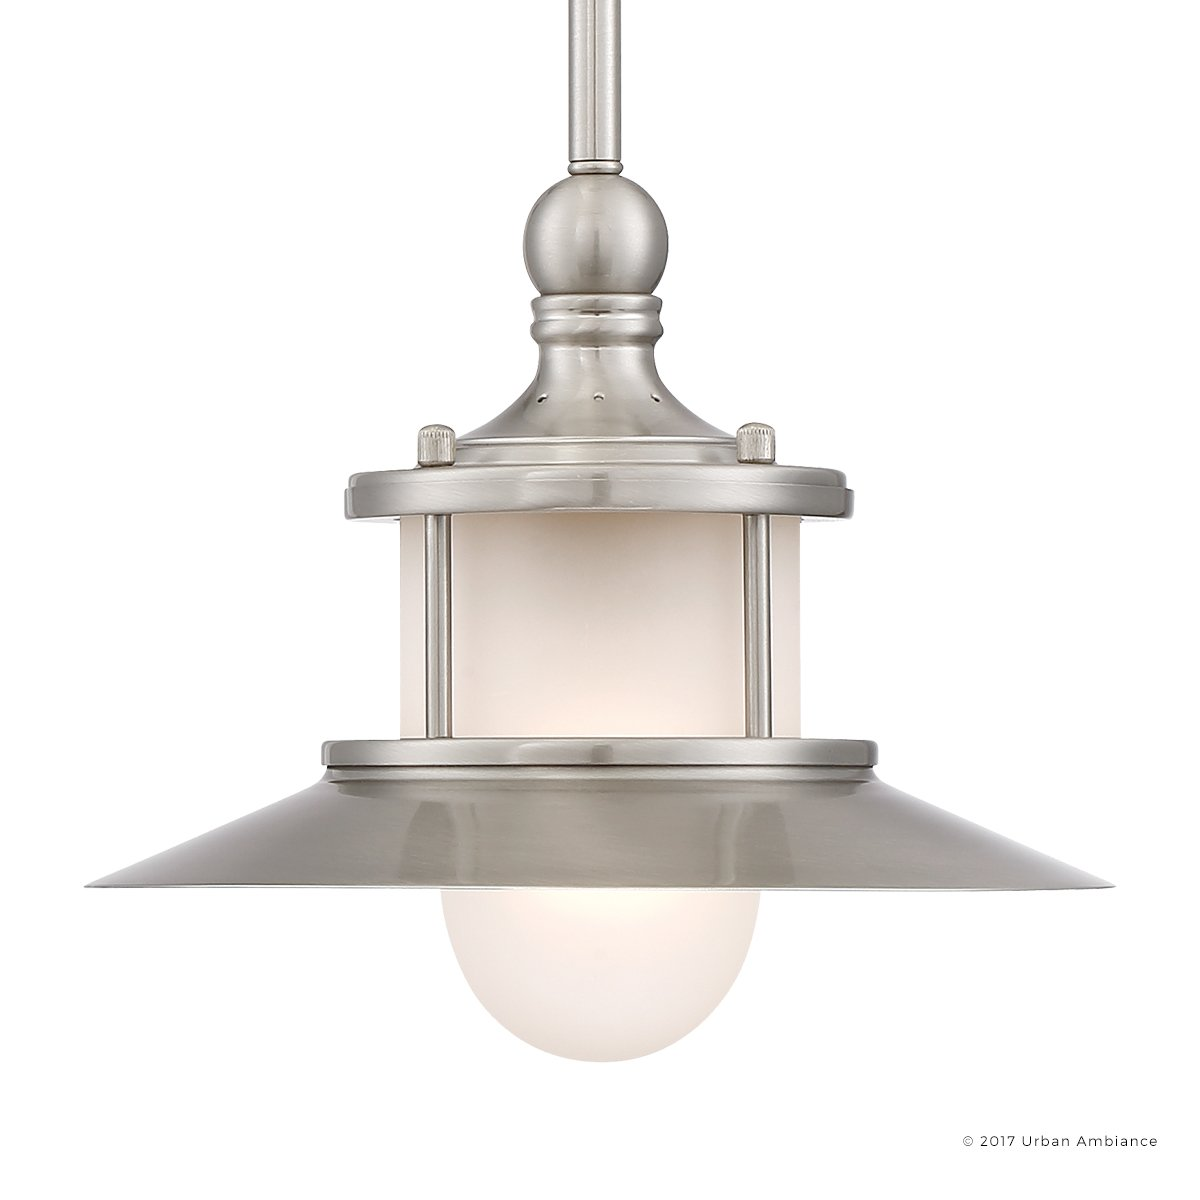 Luxury Nautical Indoor Hanging Pendant Light, Small Size: 8''H x 9.5''W, with Coastal Style Elements, Hooded Design, Pretty Brushed Nickel Finish and Acid Etched Glass, UQL2531 by Urban Ambiance